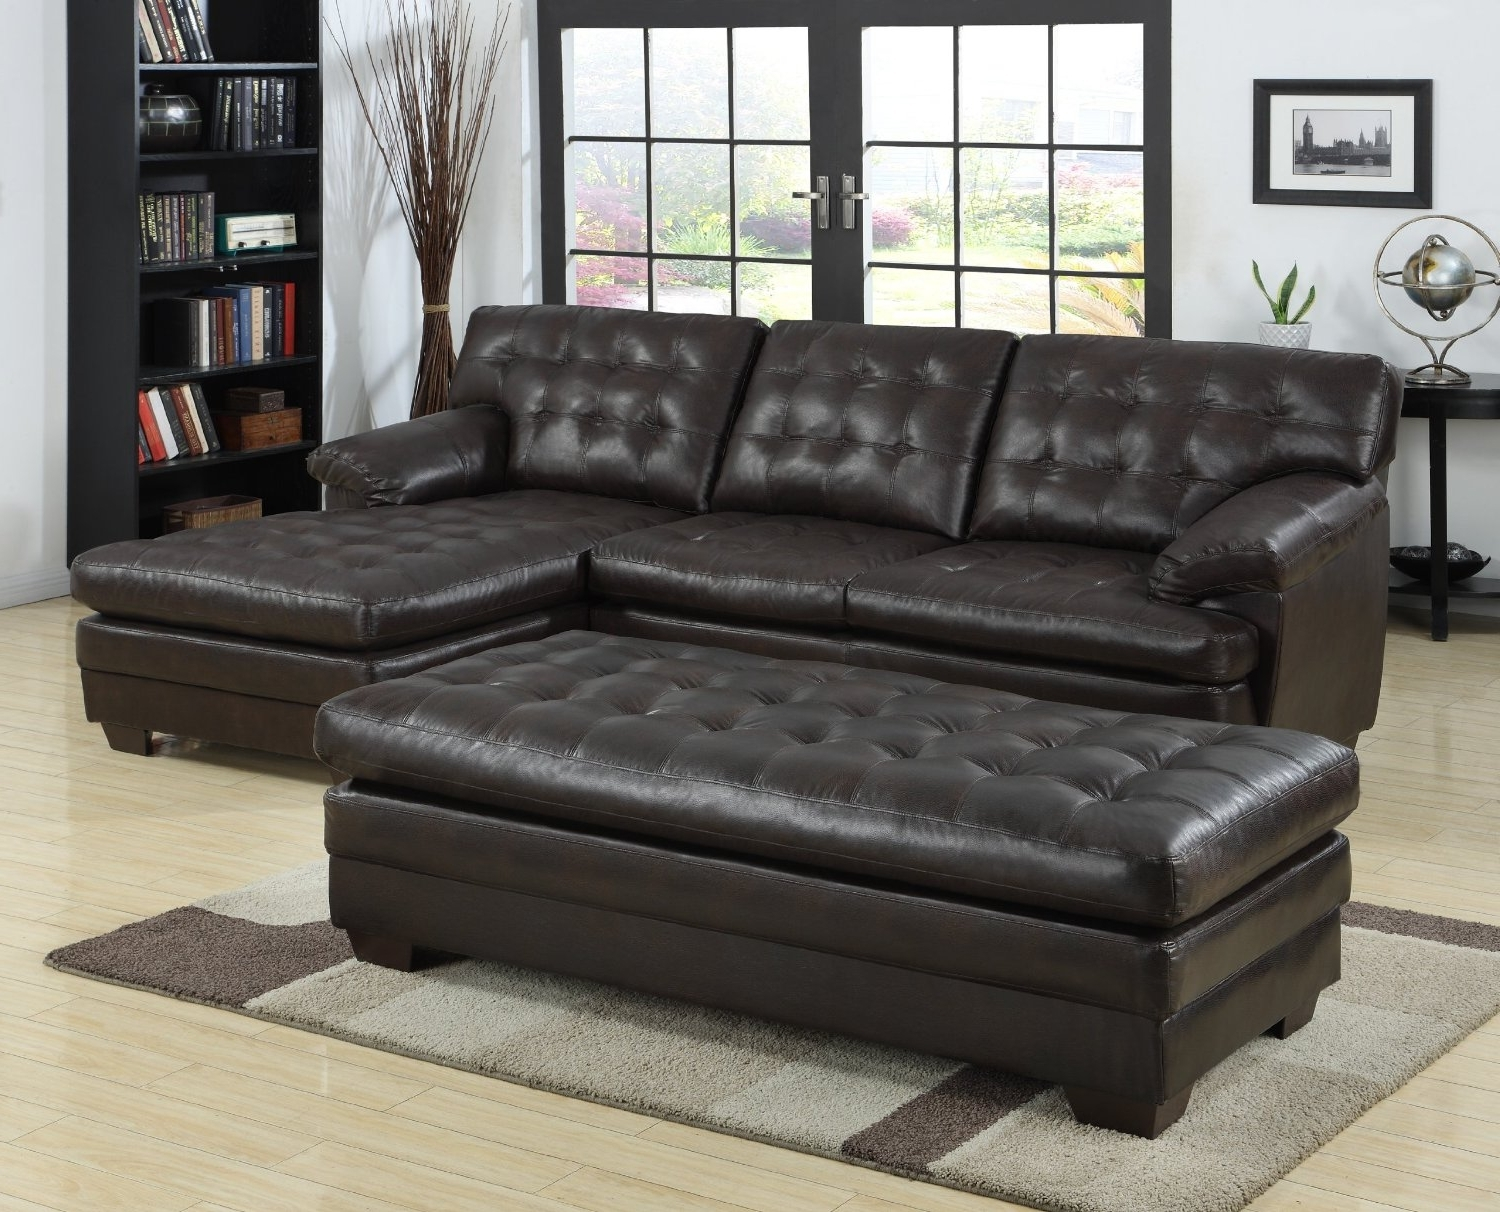 Black Tufted Leather Sectional Sofa With Chaise And Bench Seat With Regard To Popular Leather Sectionals With Chaise And Ottoman (View 1 of 20)